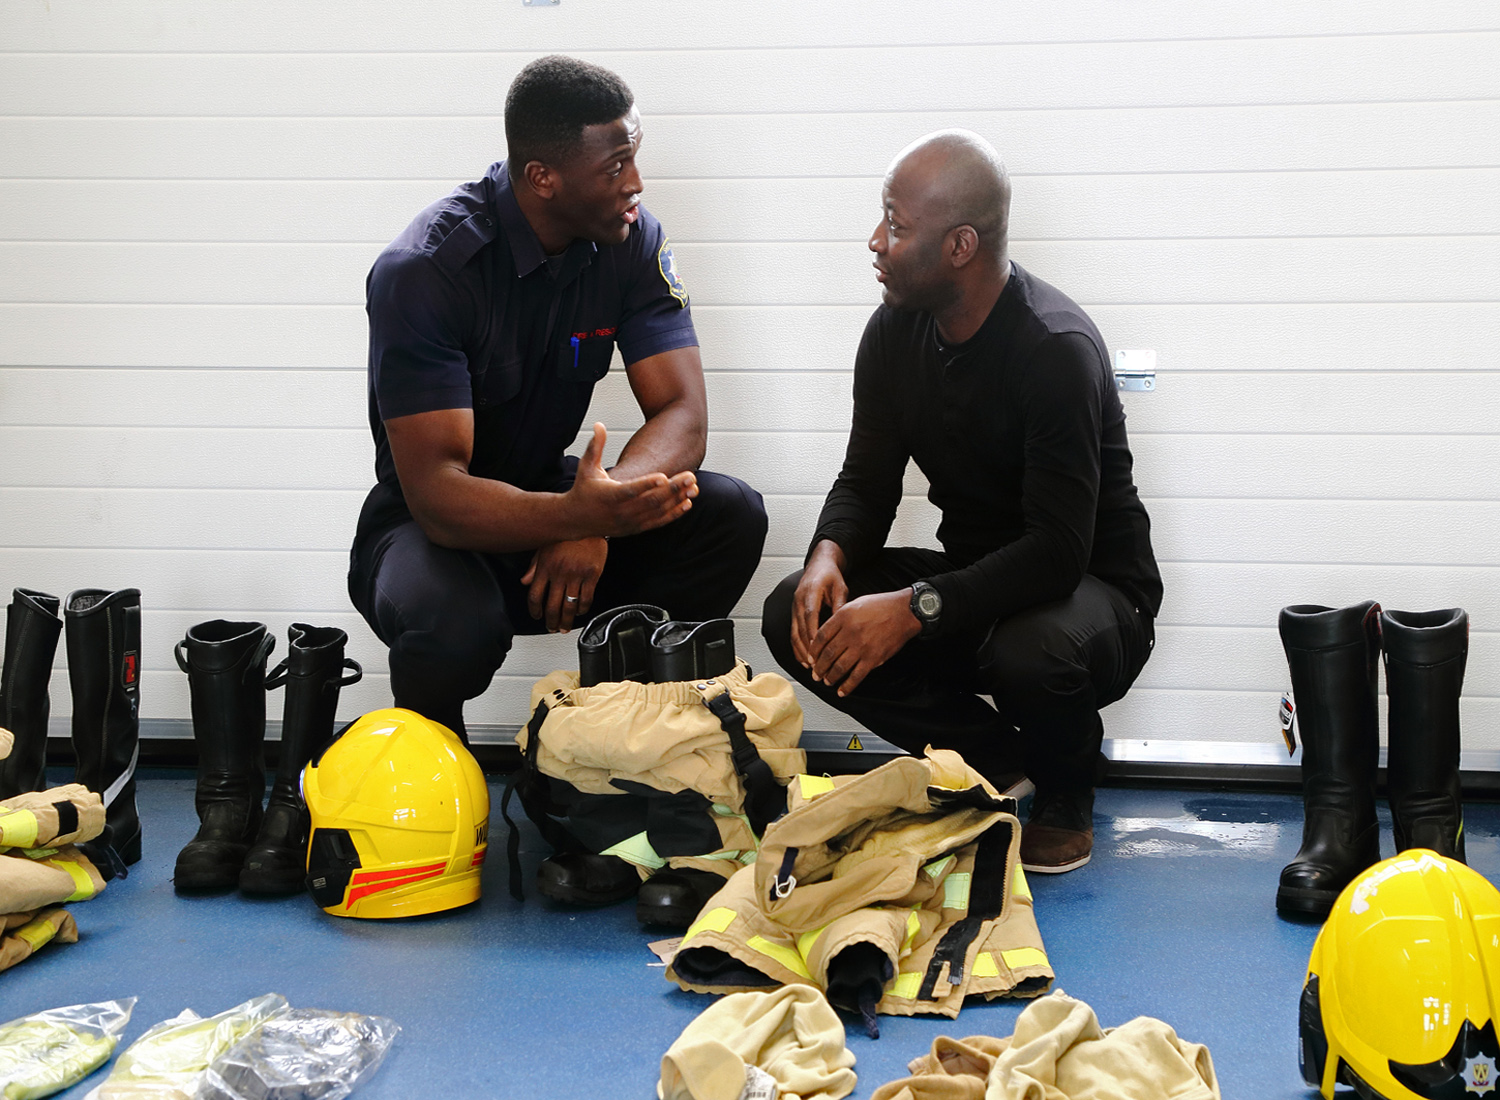 Firefighter Luke Grant talks about fire kit to Army reservist Fitzroy Lindsay